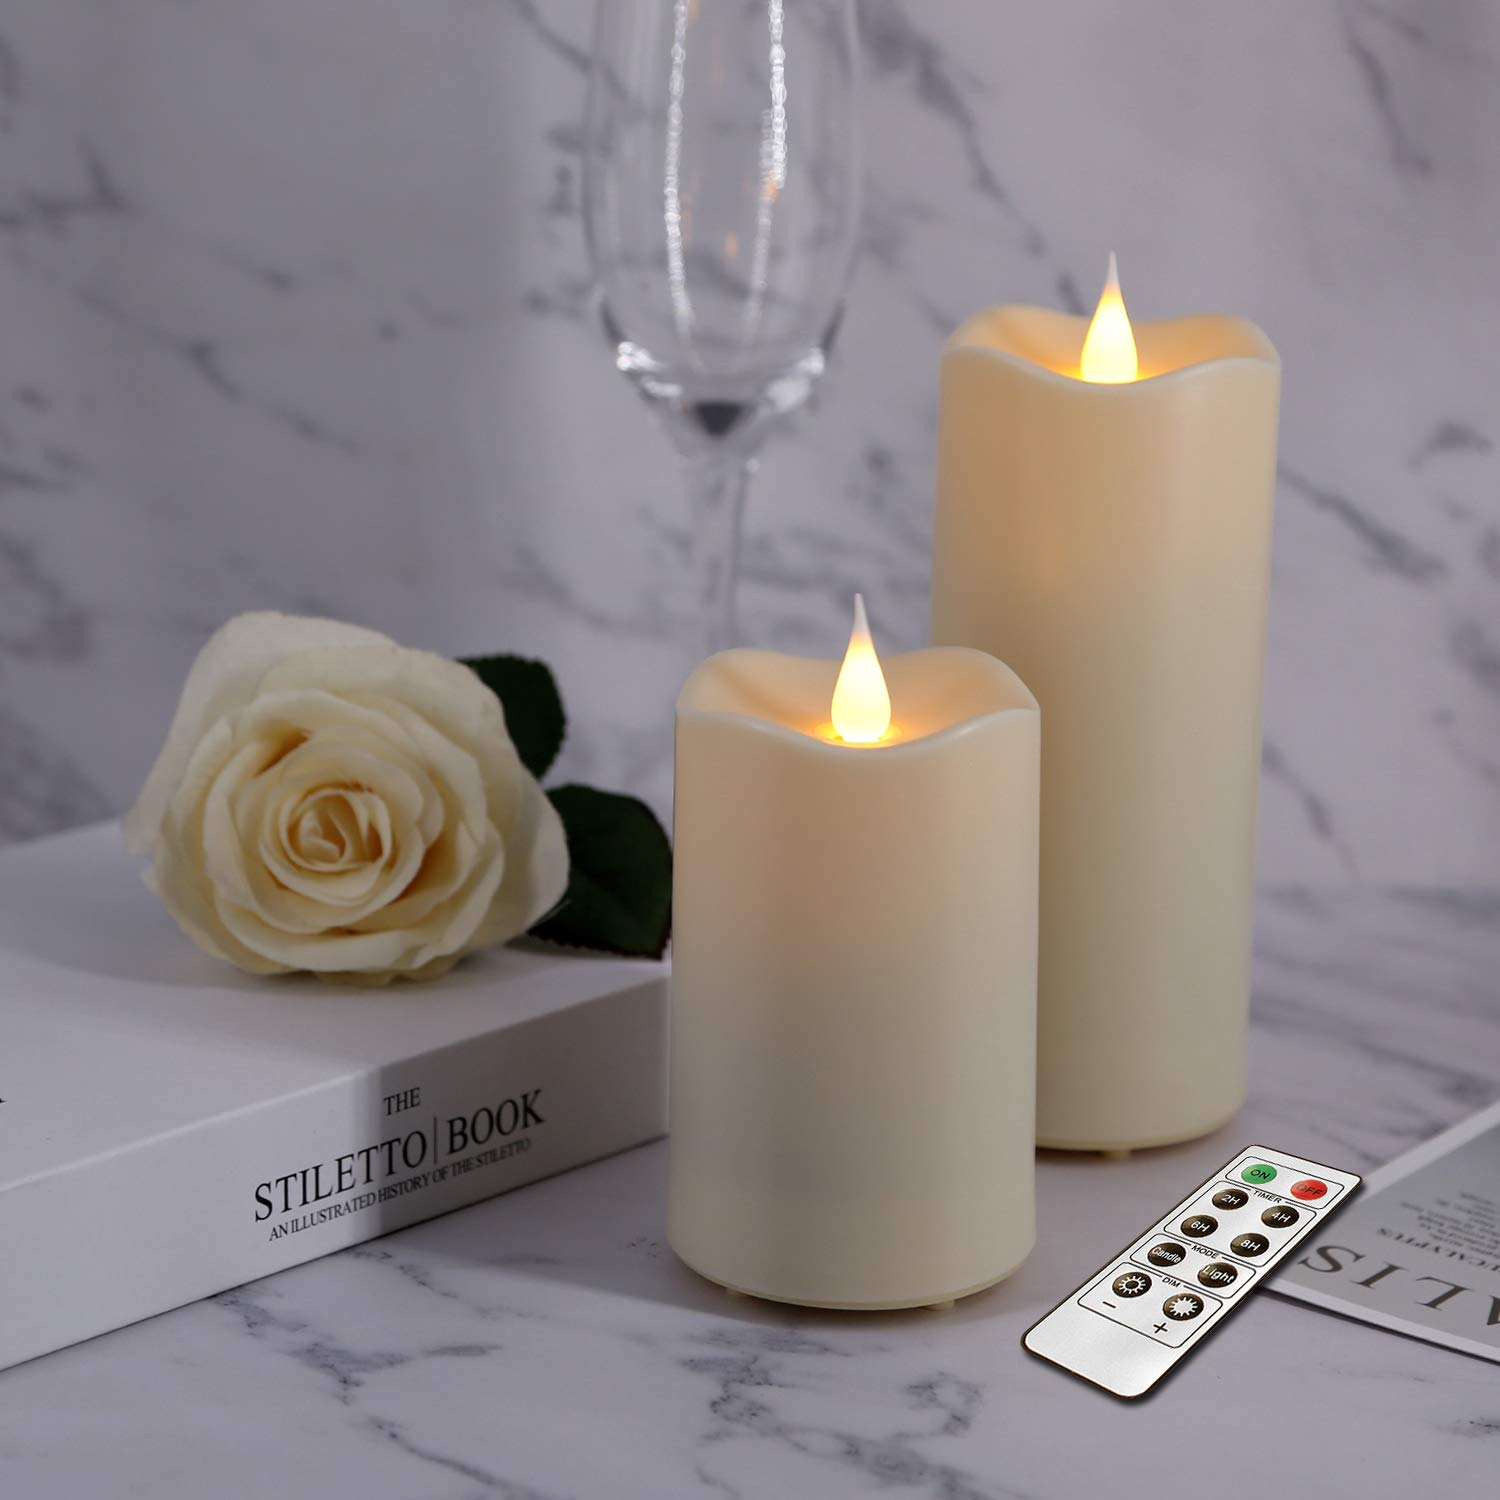 Flameless Waterproof Outdoor Candles, LED Battery Operated Candles Set with Remote Timer 3D Realistic Flickering Flames for Outdoor Home Hotel Restaurant Decoration Ivory 3×4 3×6 inch Set of 2